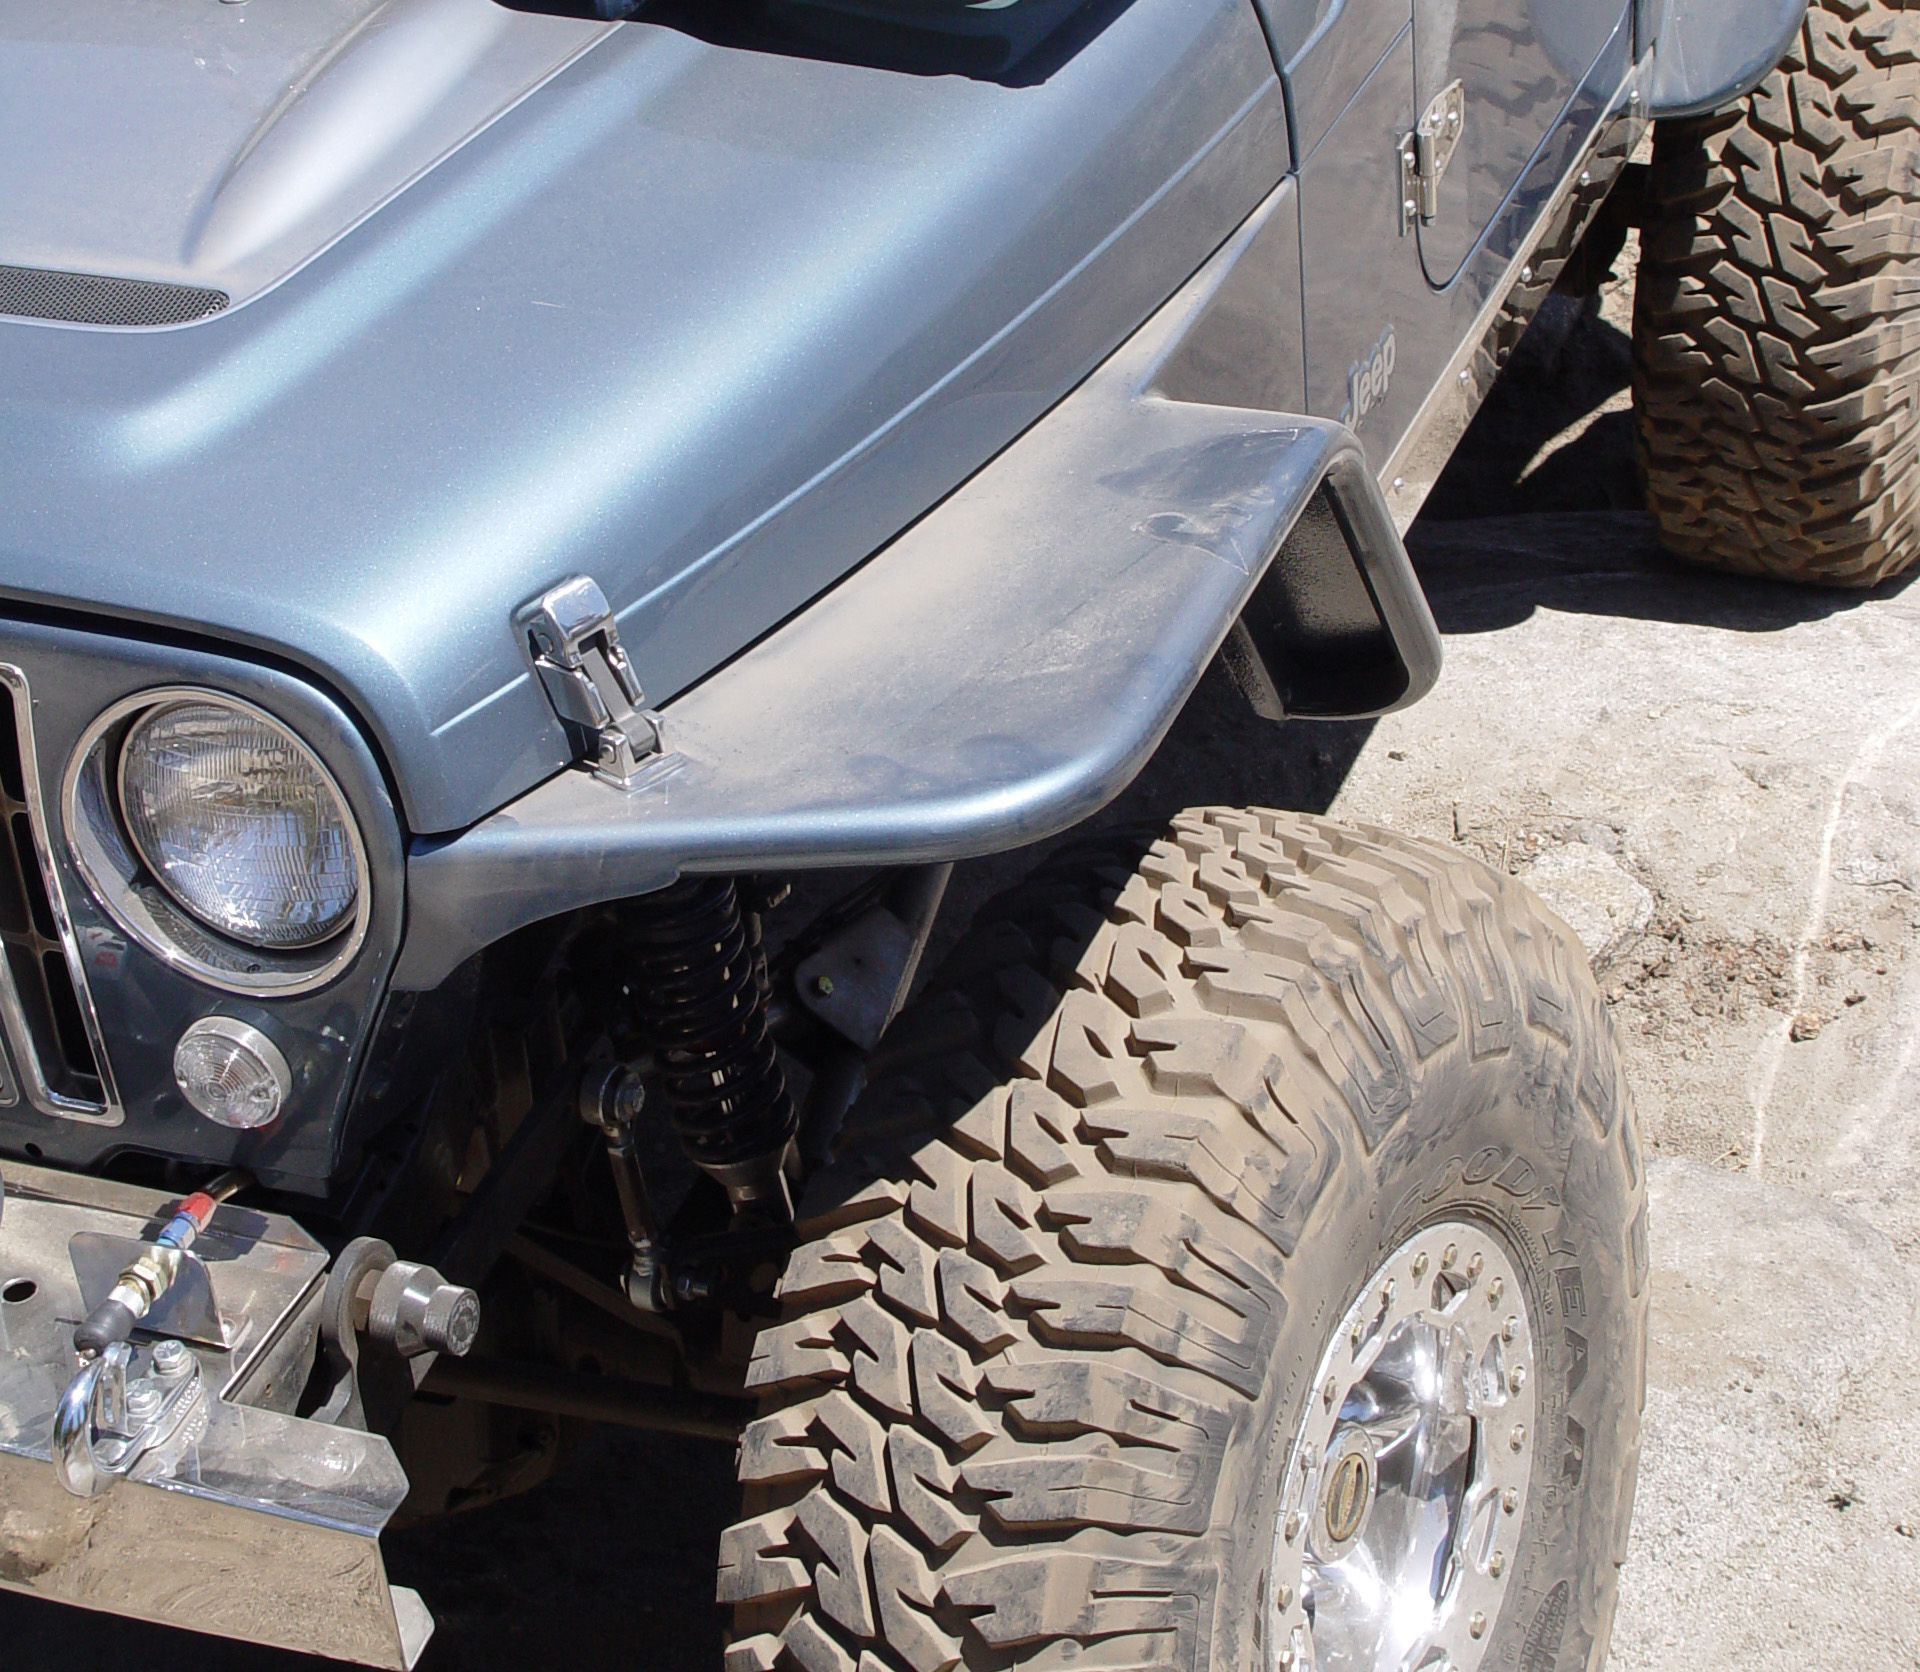 Jeep Tj Tube Fenders 6 Inch Flare 97 06 Wrangler Lj Tnt Customs Rear Suspension As Well Front Parts Diagram With